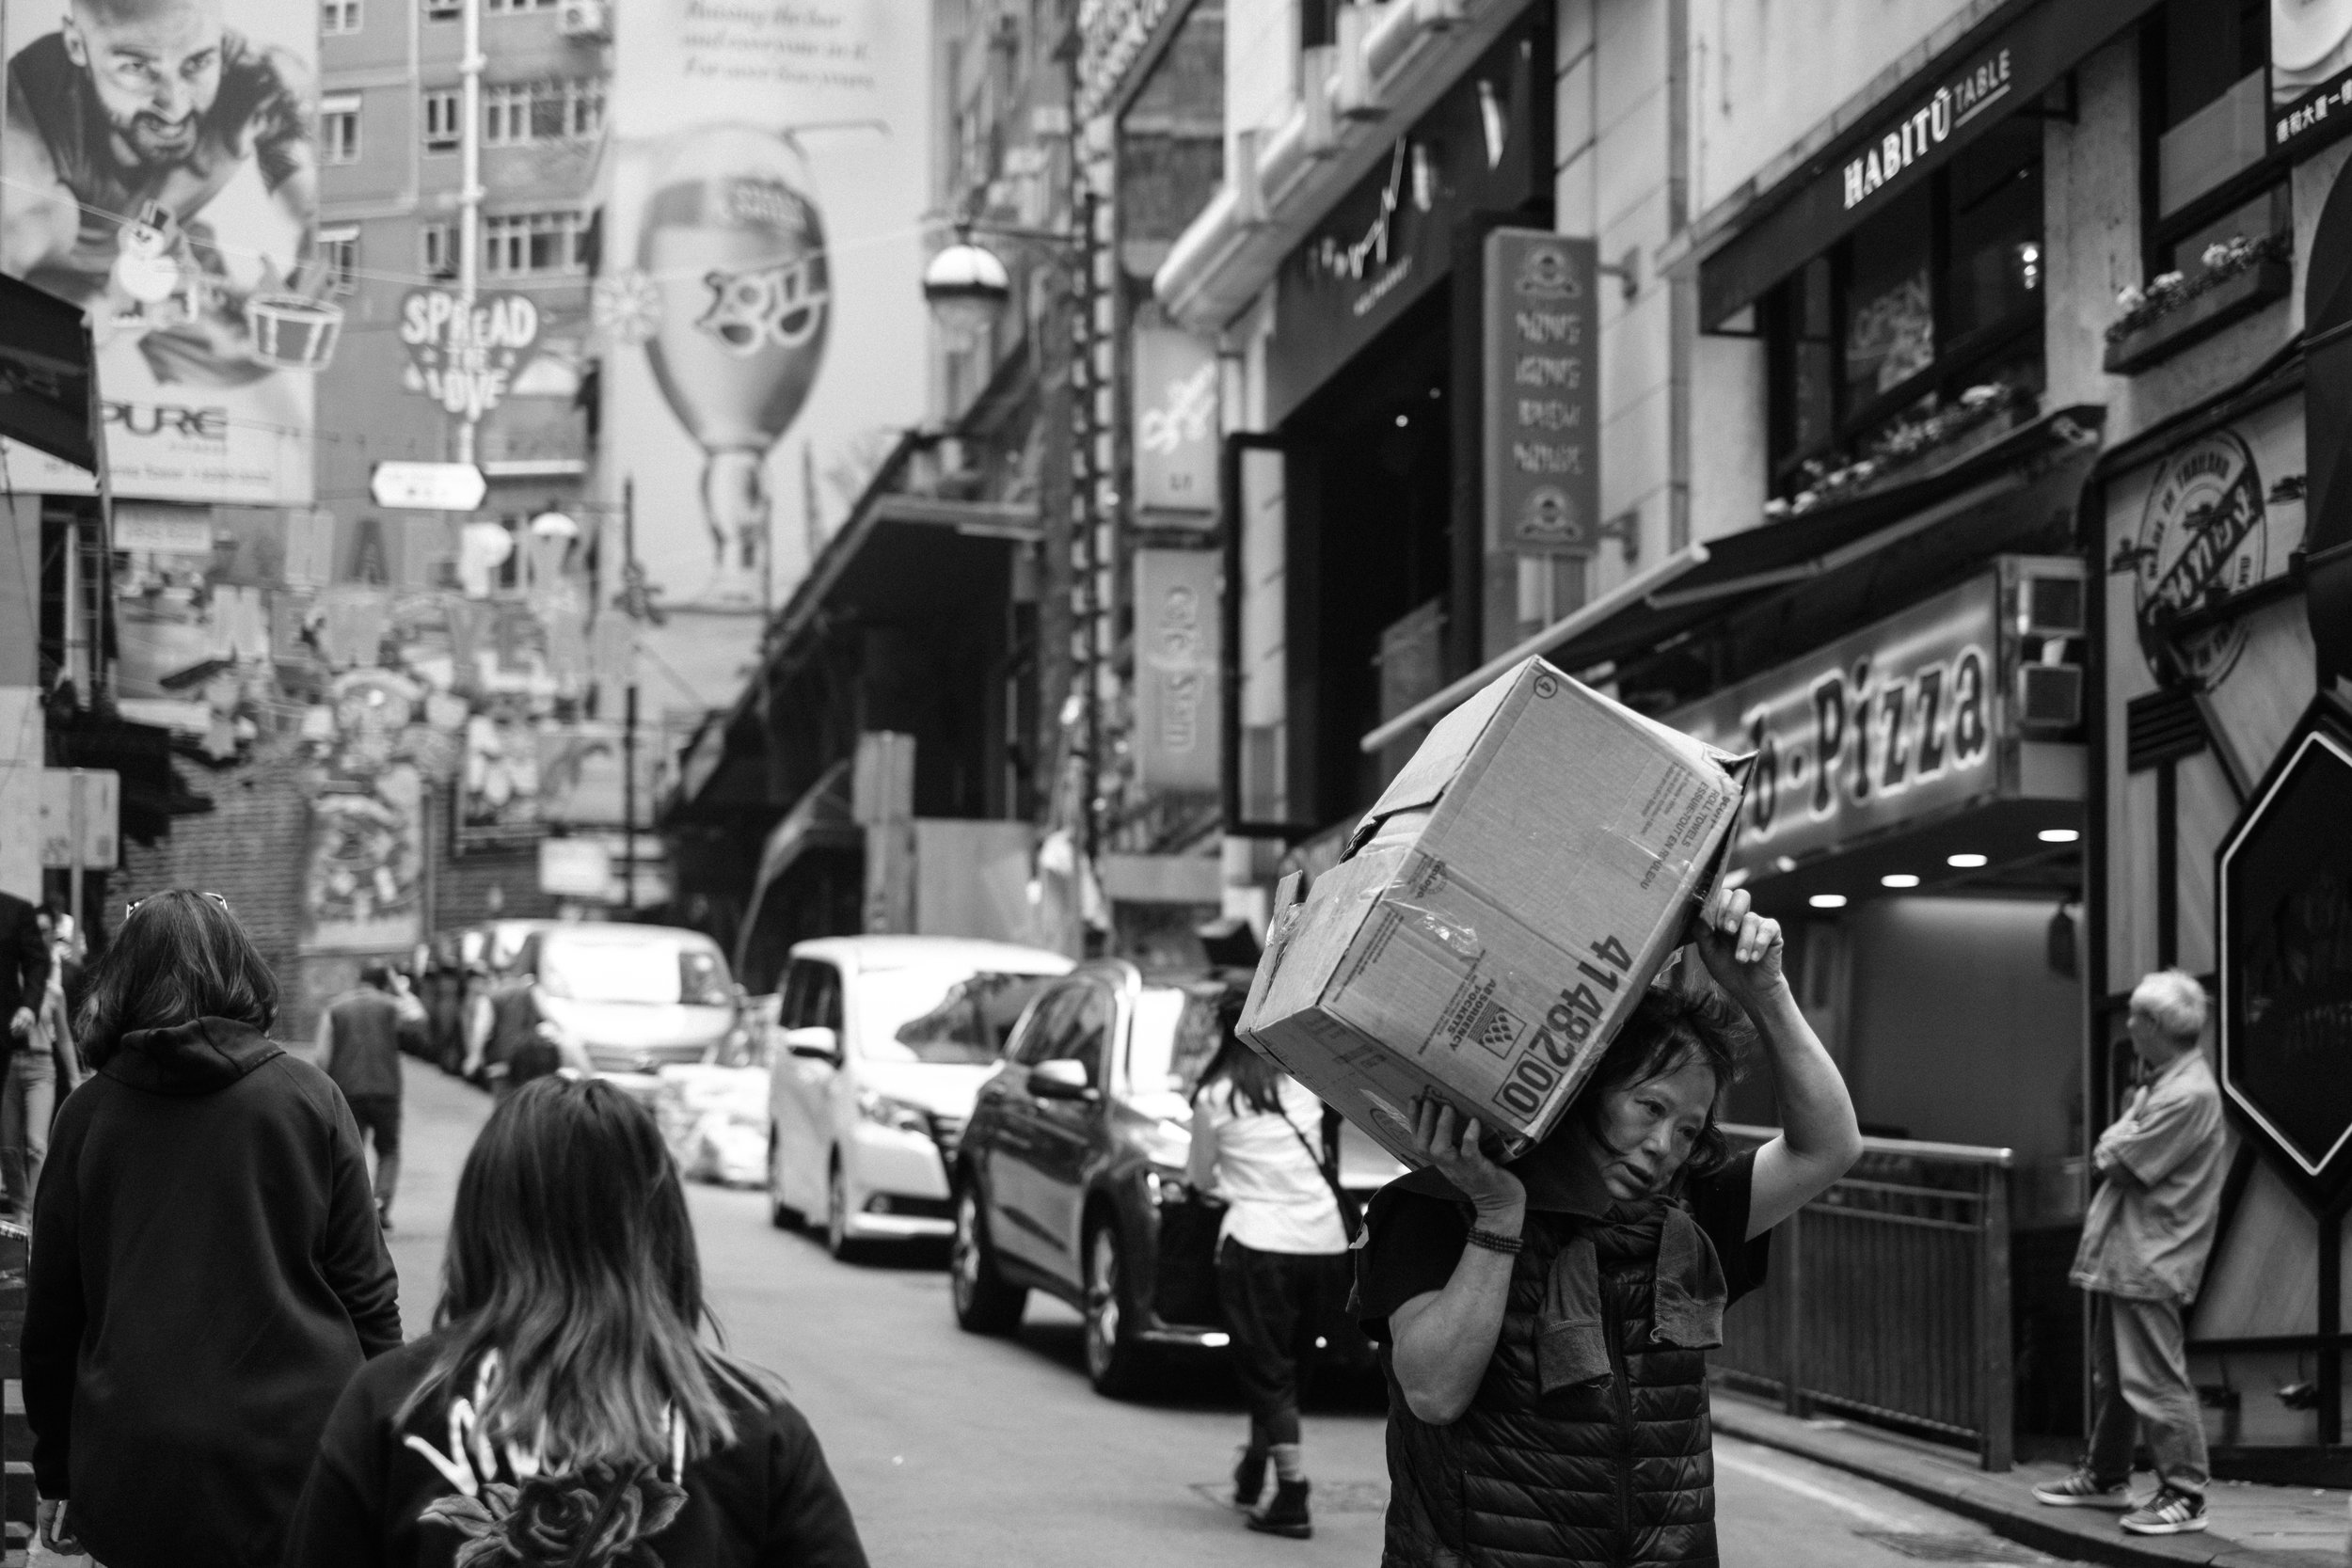 A woman carries a cardboard box on her shoulder through a street in the Central district of Hong Kong